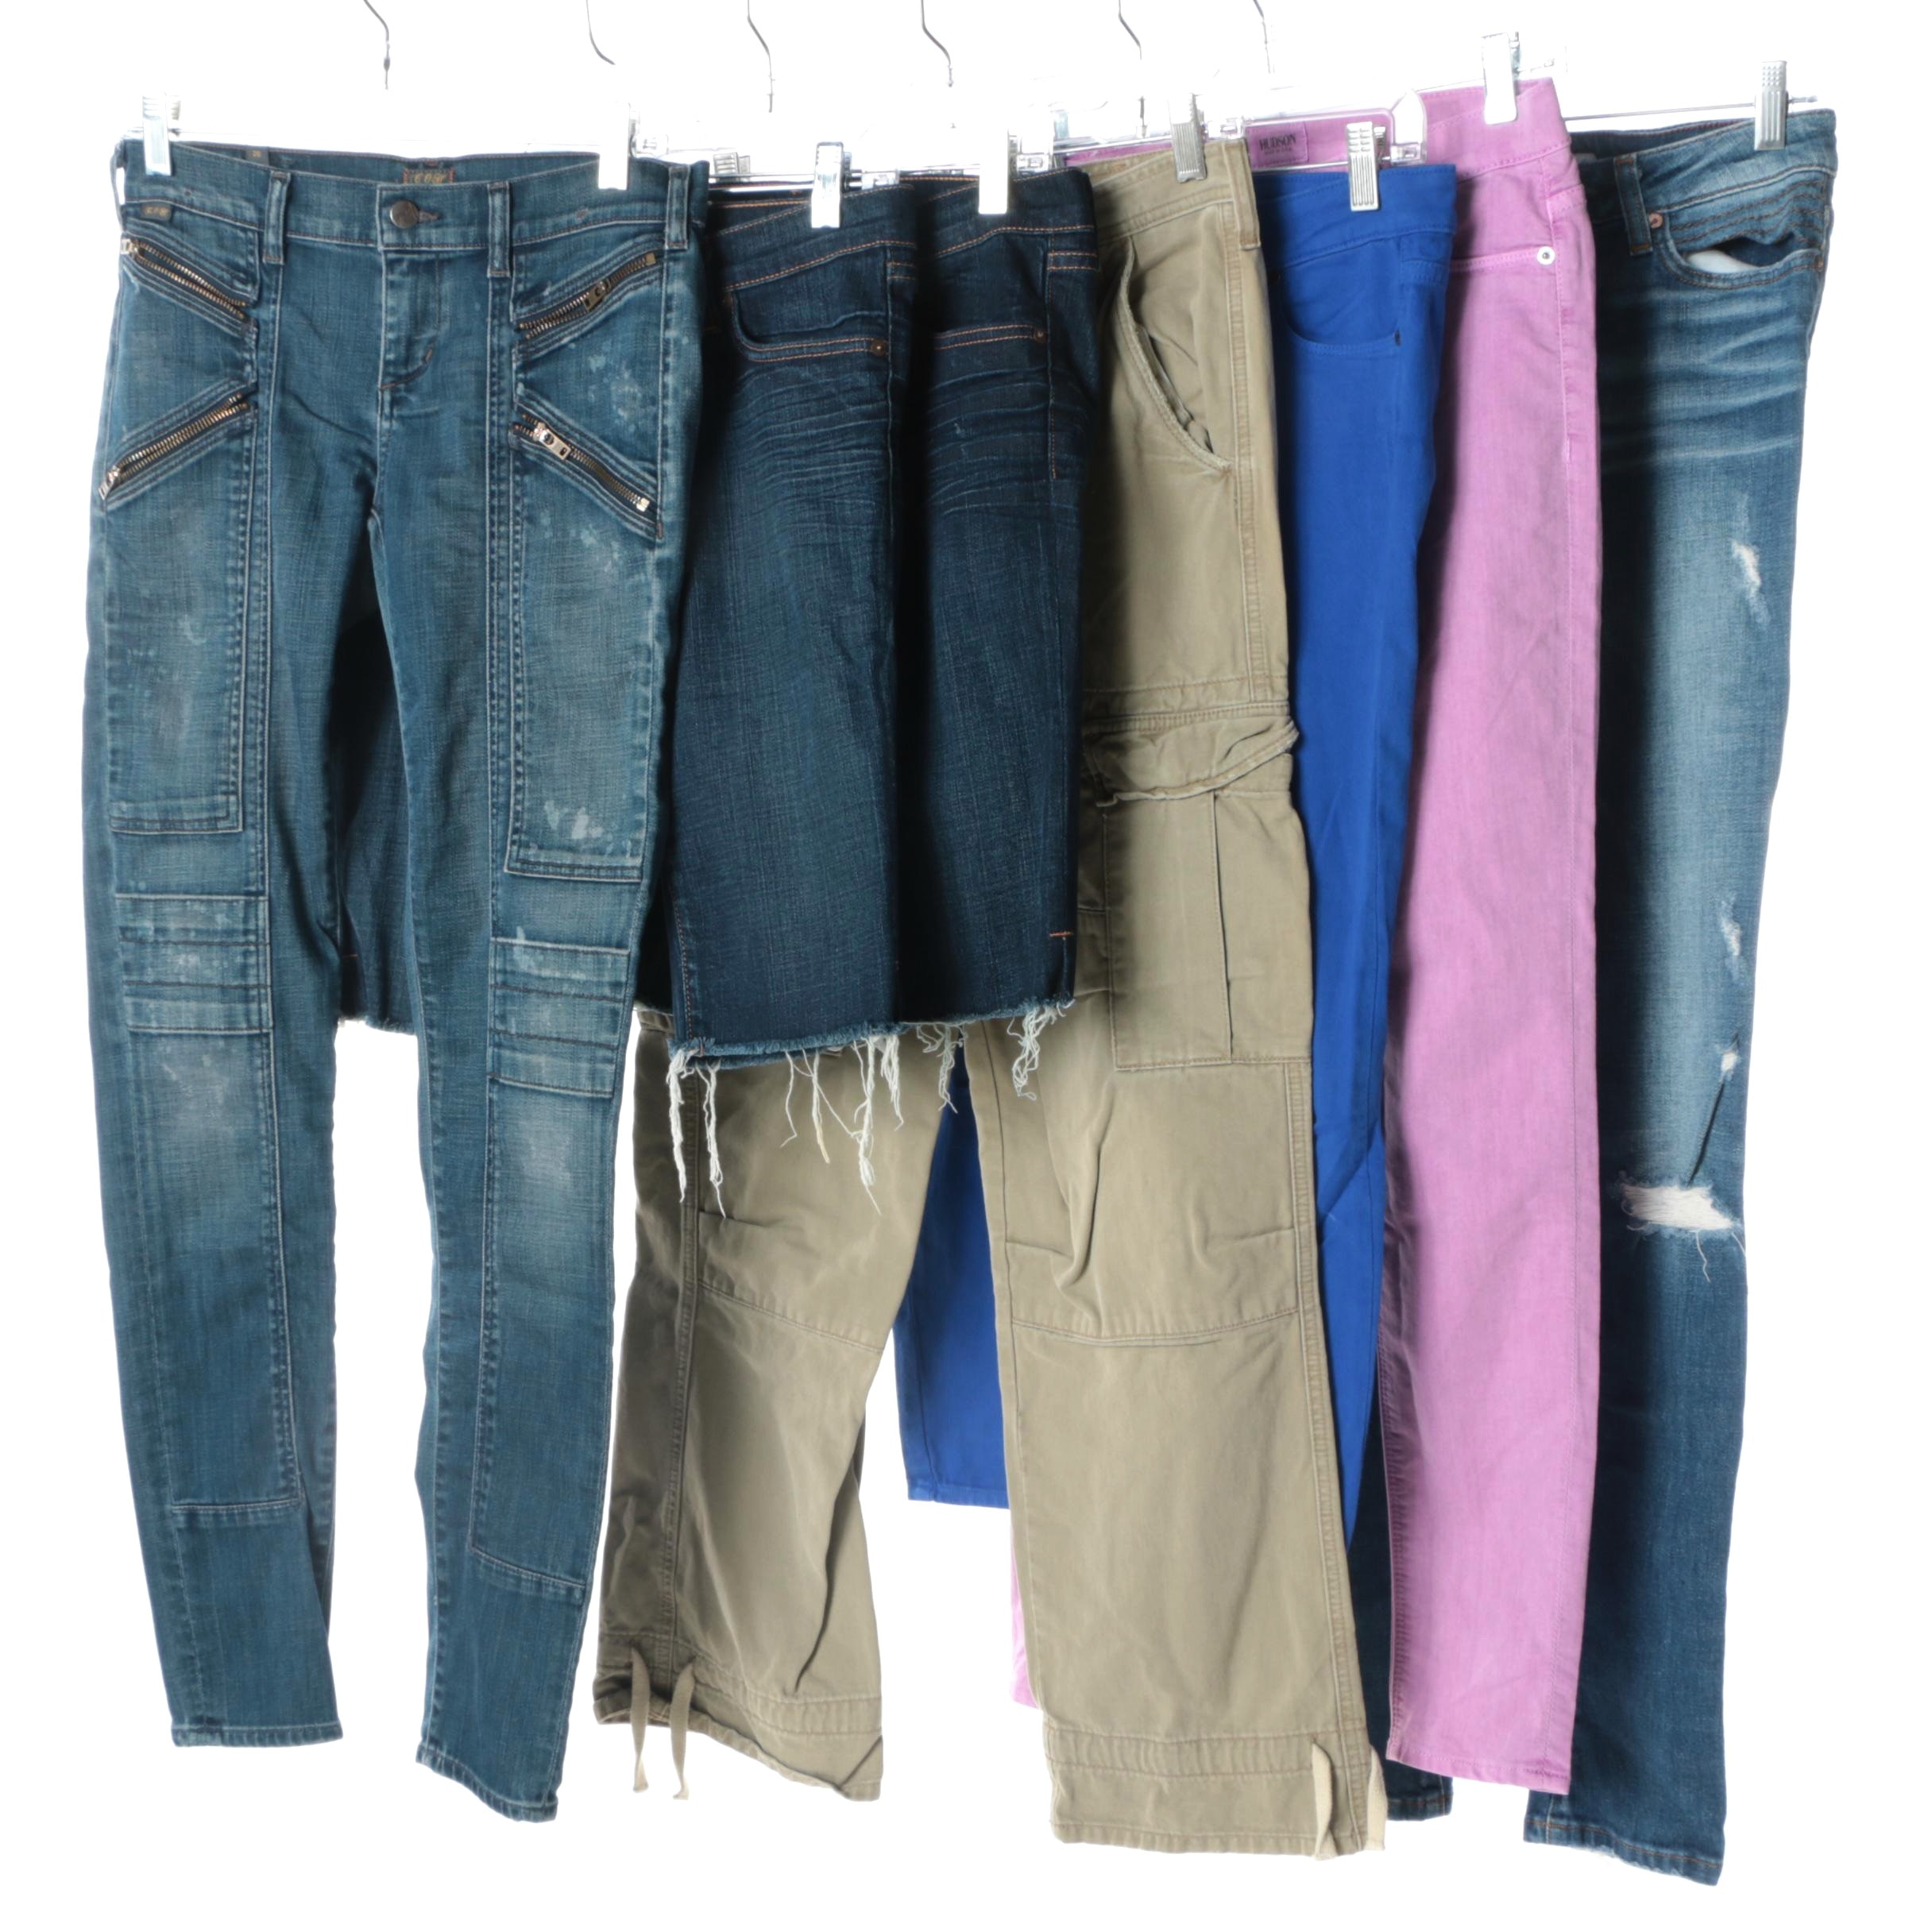 Women's Jeans, Shorts and Pants Including J Brand